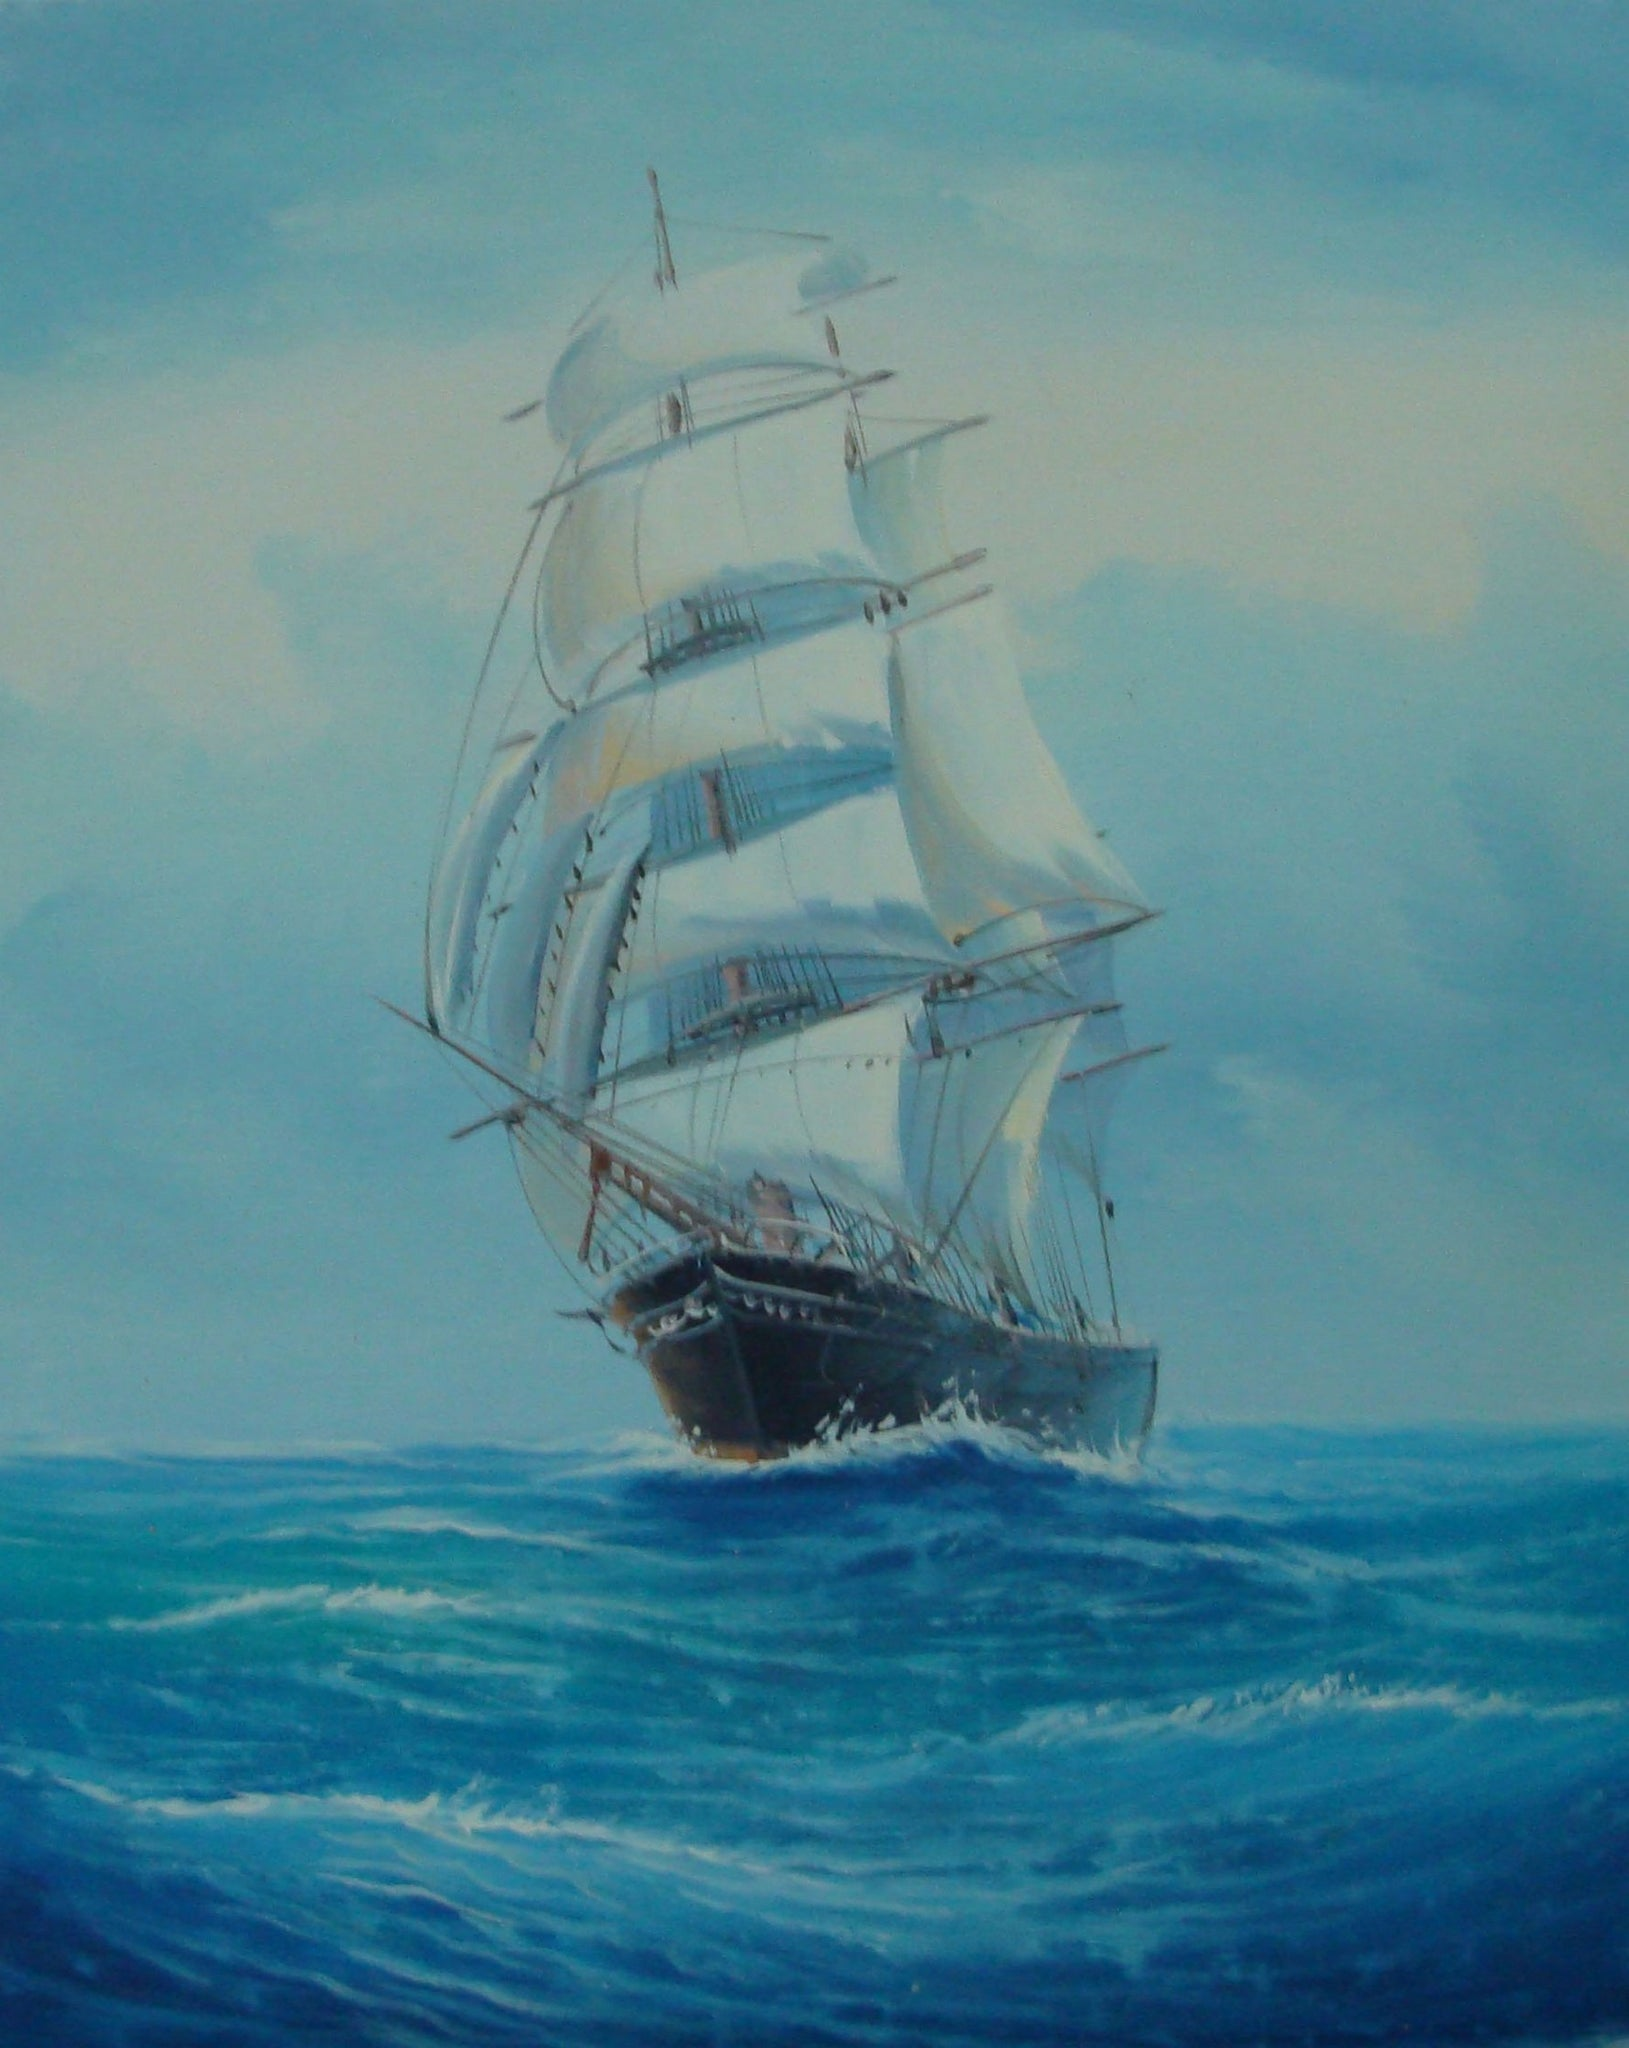 Canvas Art, Canvas Painting, Wall Art, Seascape Painting, Oil Painting, Large Painting, Dining Room Wall Art, Canvas Oil Painting, Canvas Wall Art, Sailing Boat at Sea-Paintingforhome